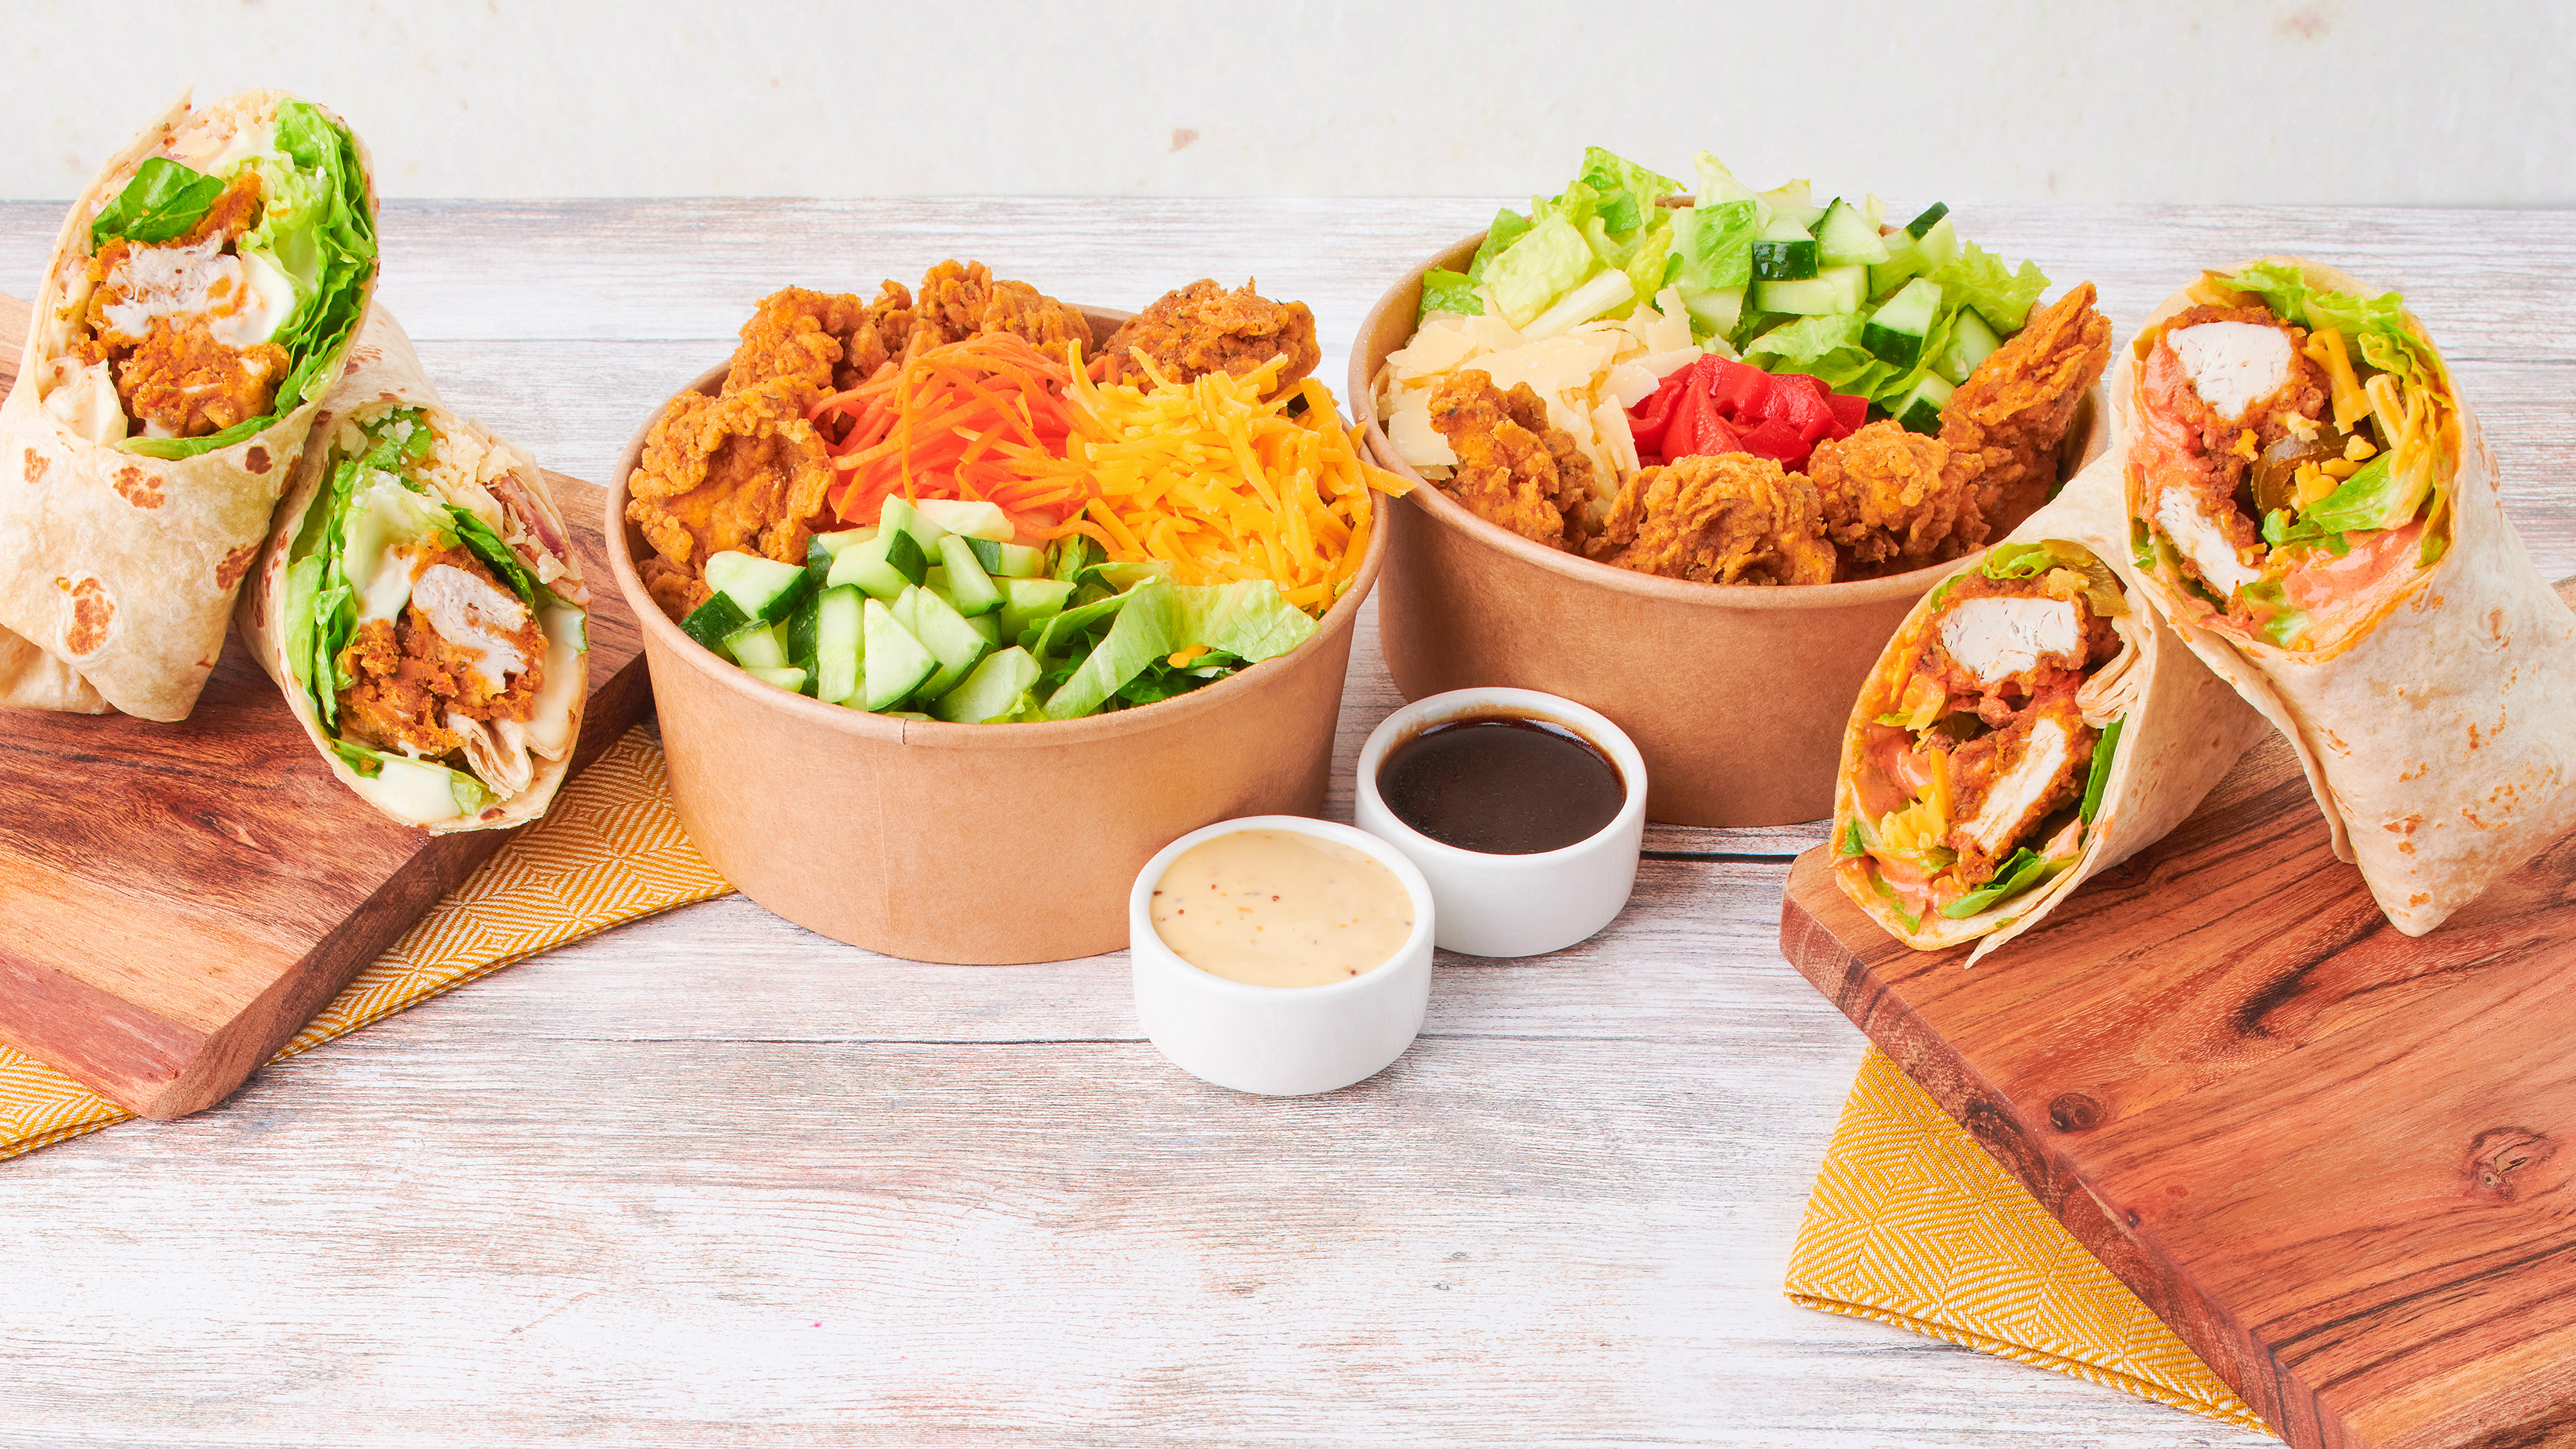 The Do's and Don'ts of Delivery Platform Menu Photos